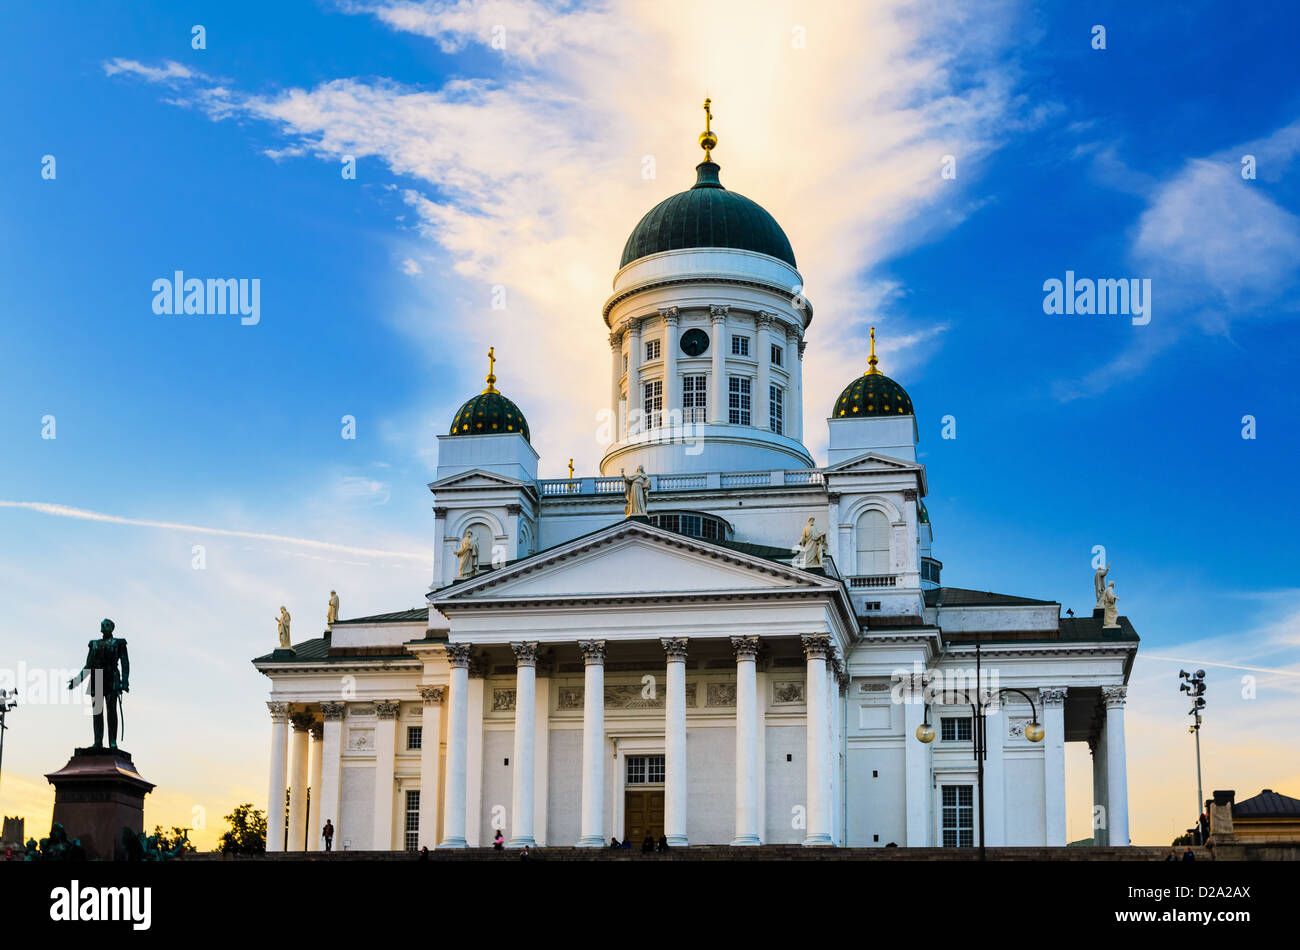 The Helsinki Lutheran Cathedral in evening light, Finland - Stock Image